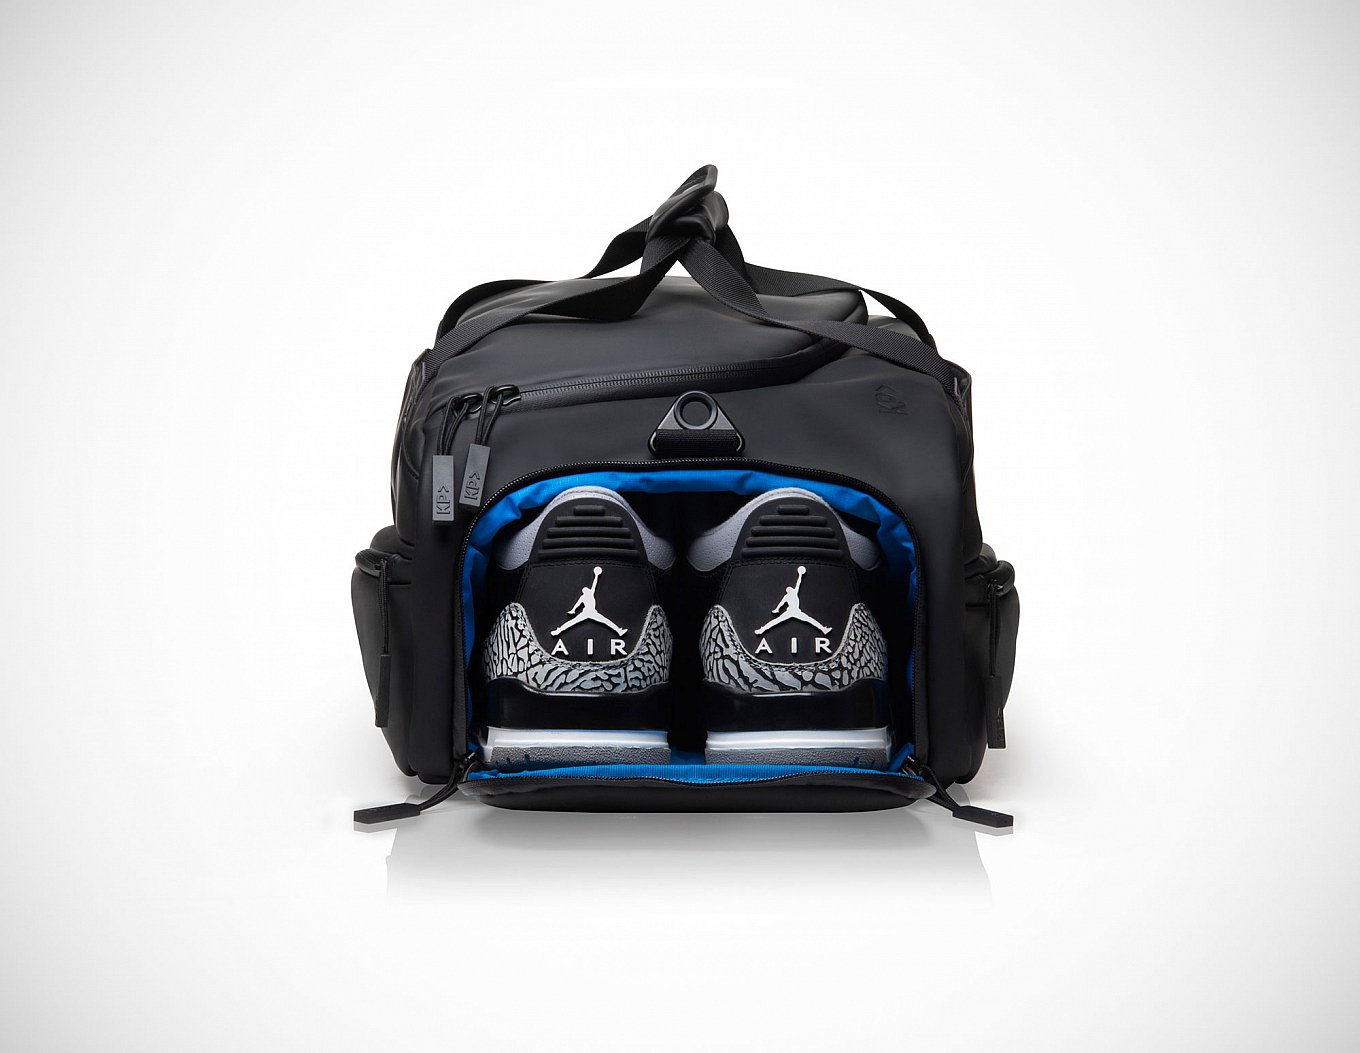 kp-duffle-innovative-gym-duffel-4